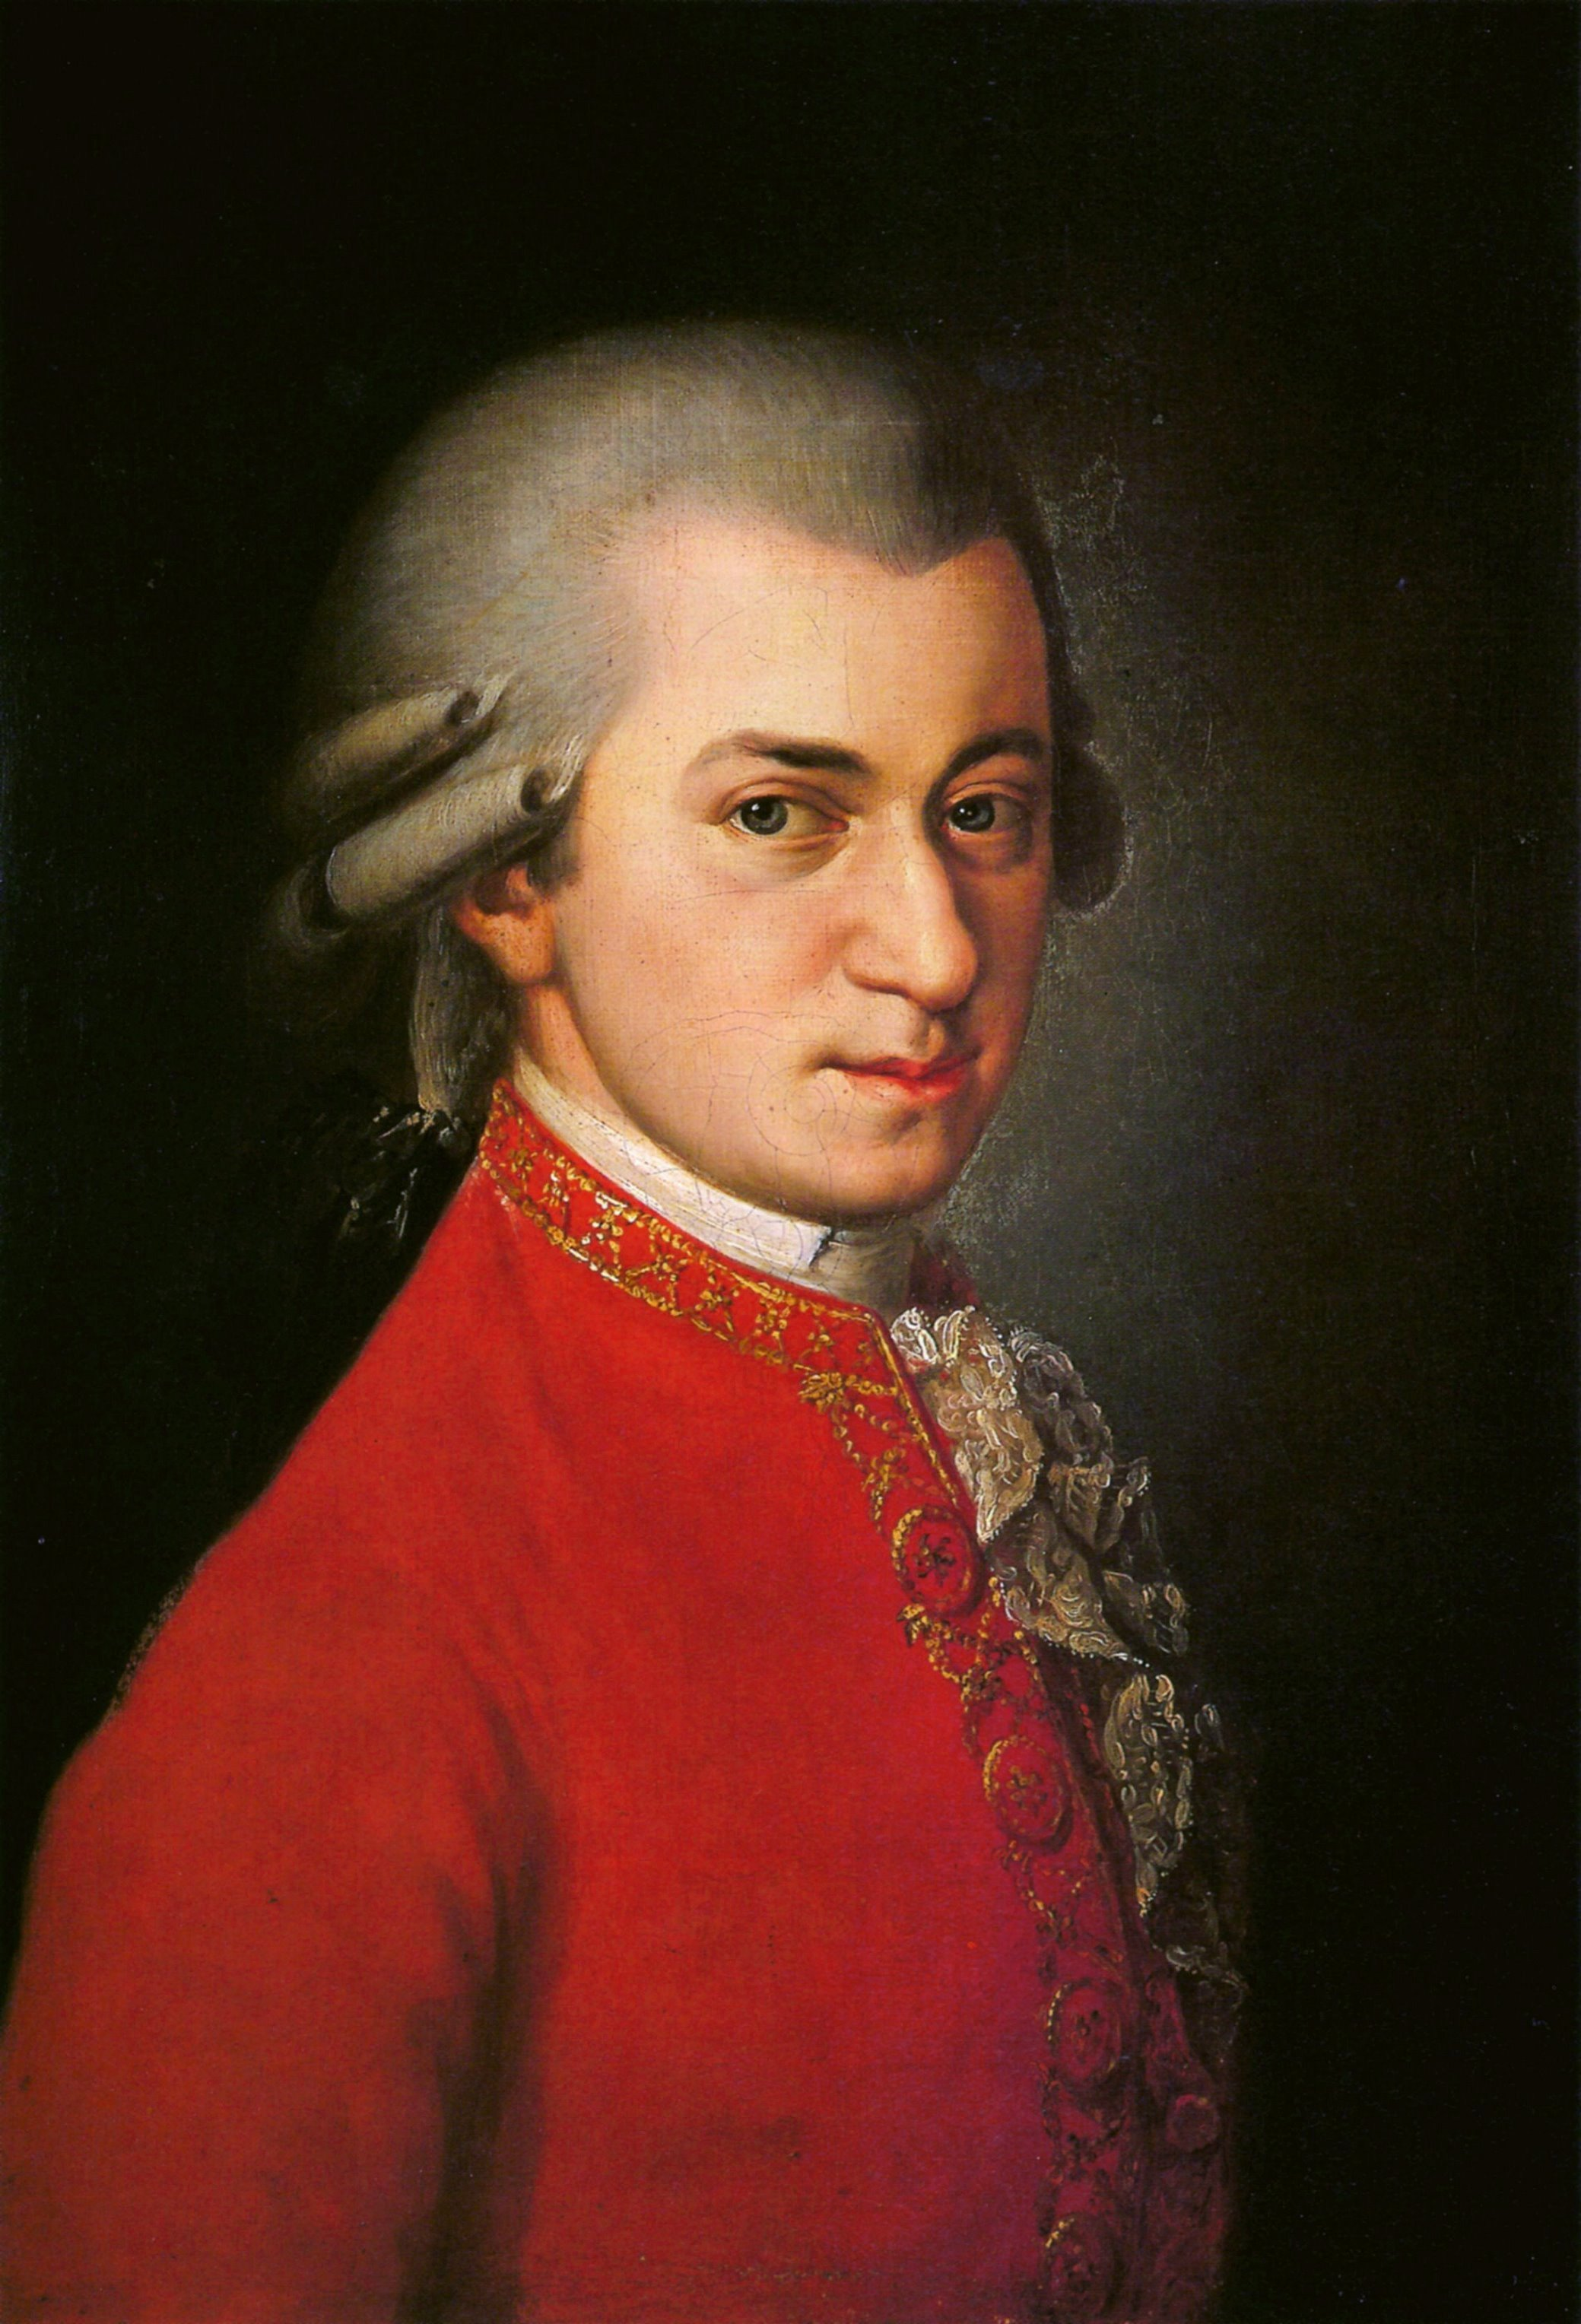 Posthumous portrait of Wolfgang Amadeus Mozart was painted by Barbara Kraft at the request of Joseph Sonnleithner in 1819, long after Mozart died. Sonnleithner, who was making a